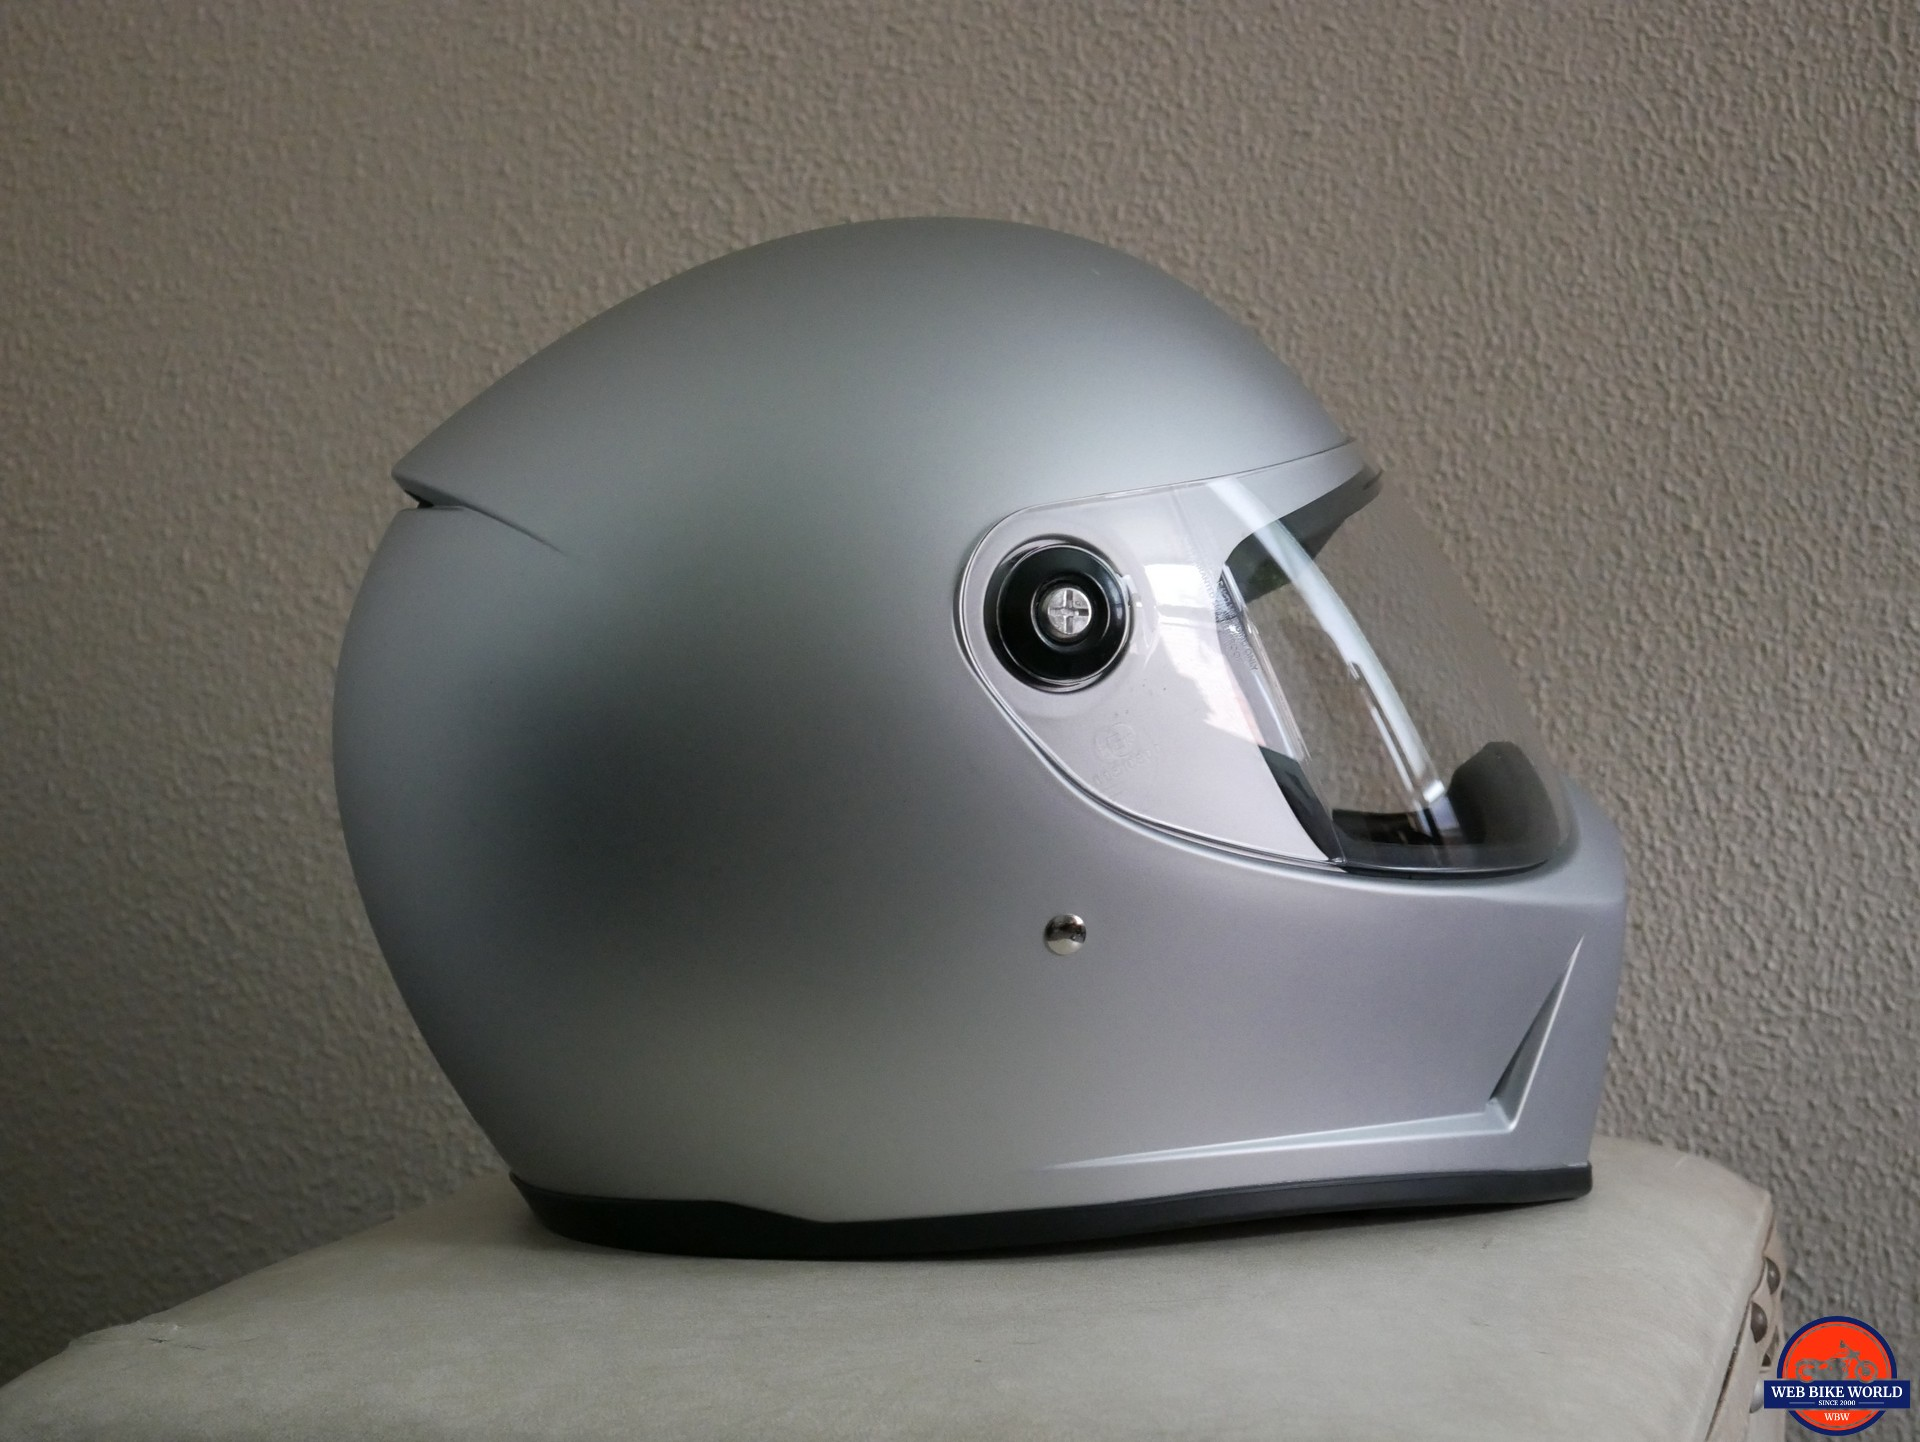 Biltwell Lane Splitter Helmet Profile View